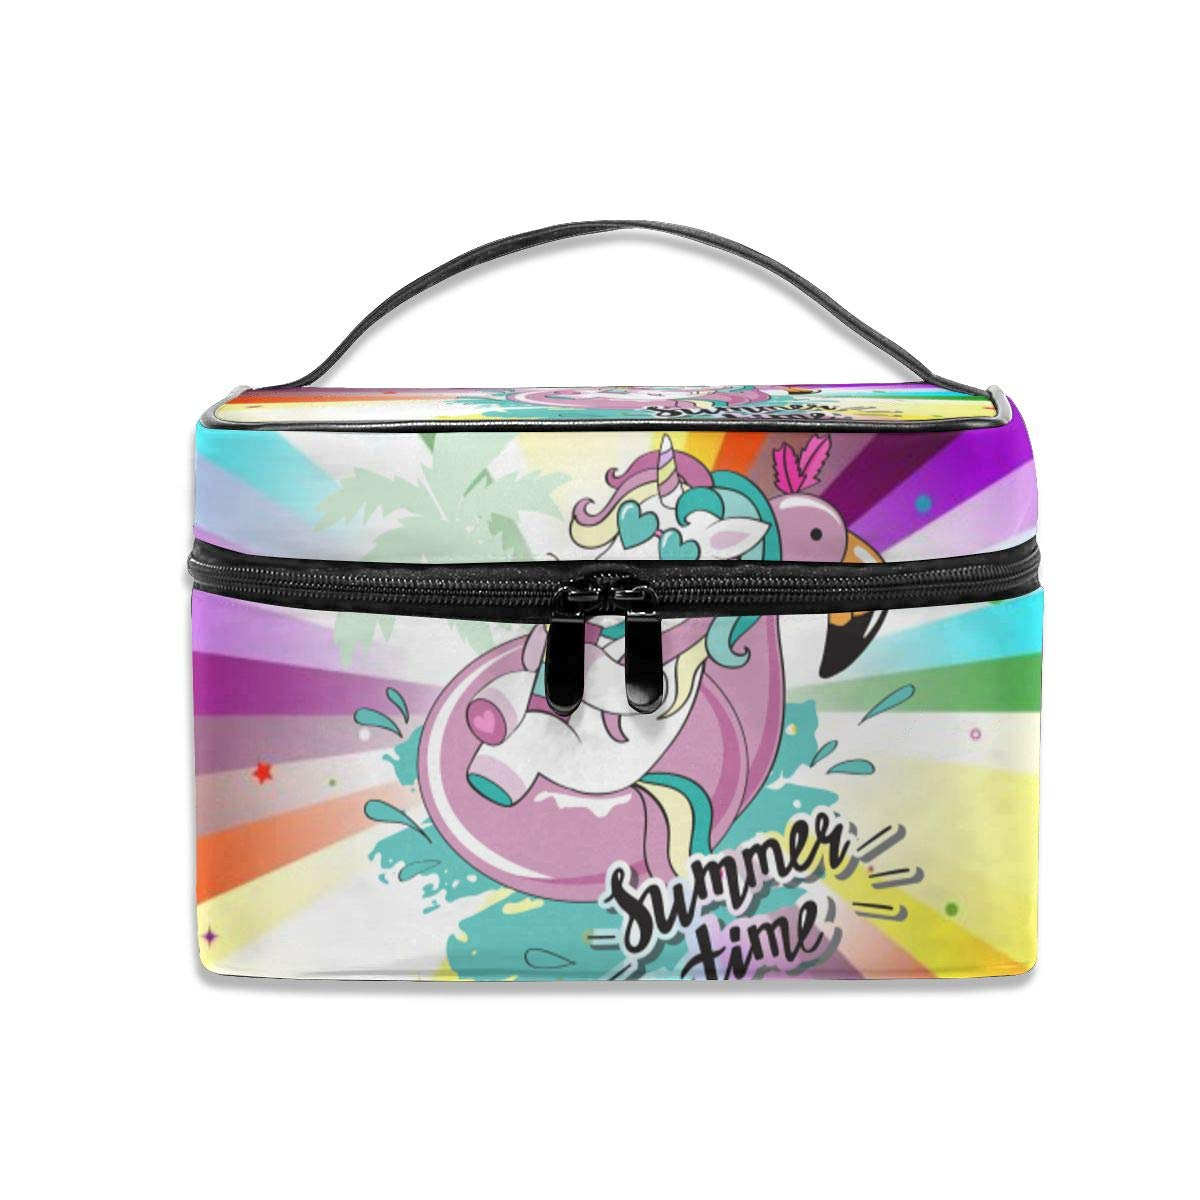 New sales Lucaeat Rainbow Star Makeup Train Portable Case Carrying Zip Tra New products world's highest quality popular